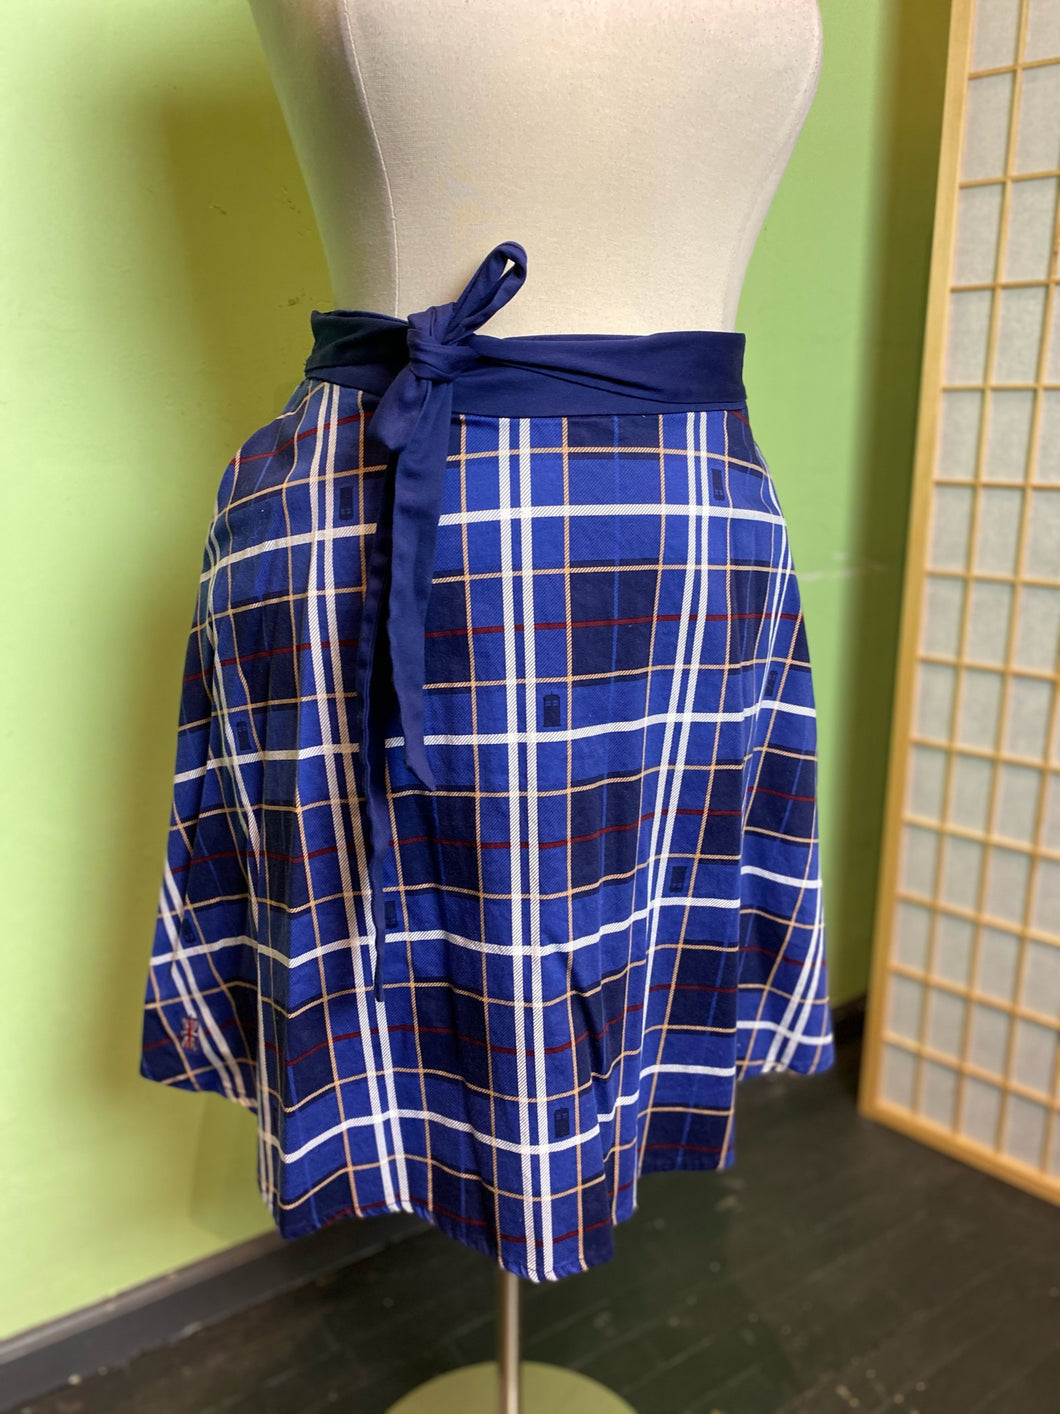 Dr. Who Tardis Skirt, Size 18